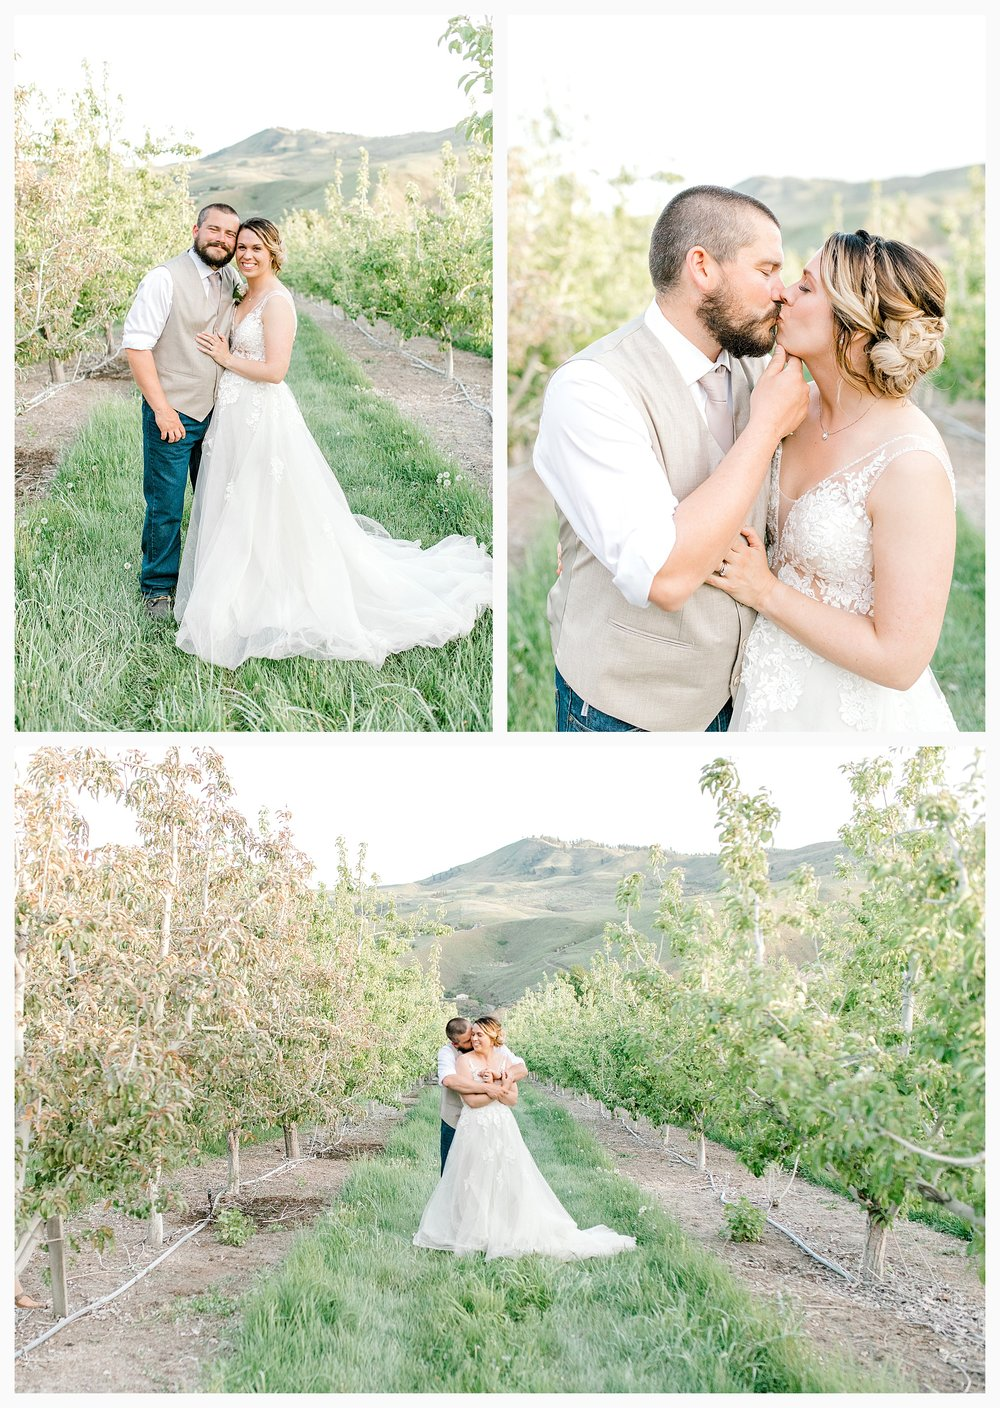 Rustic barn wedding in Wenatchee Washington at Sunshine Ranch on Easy Street, Emma Rose Company Seattle PNW Light and Airy Wedding Photographer_0133.jpg